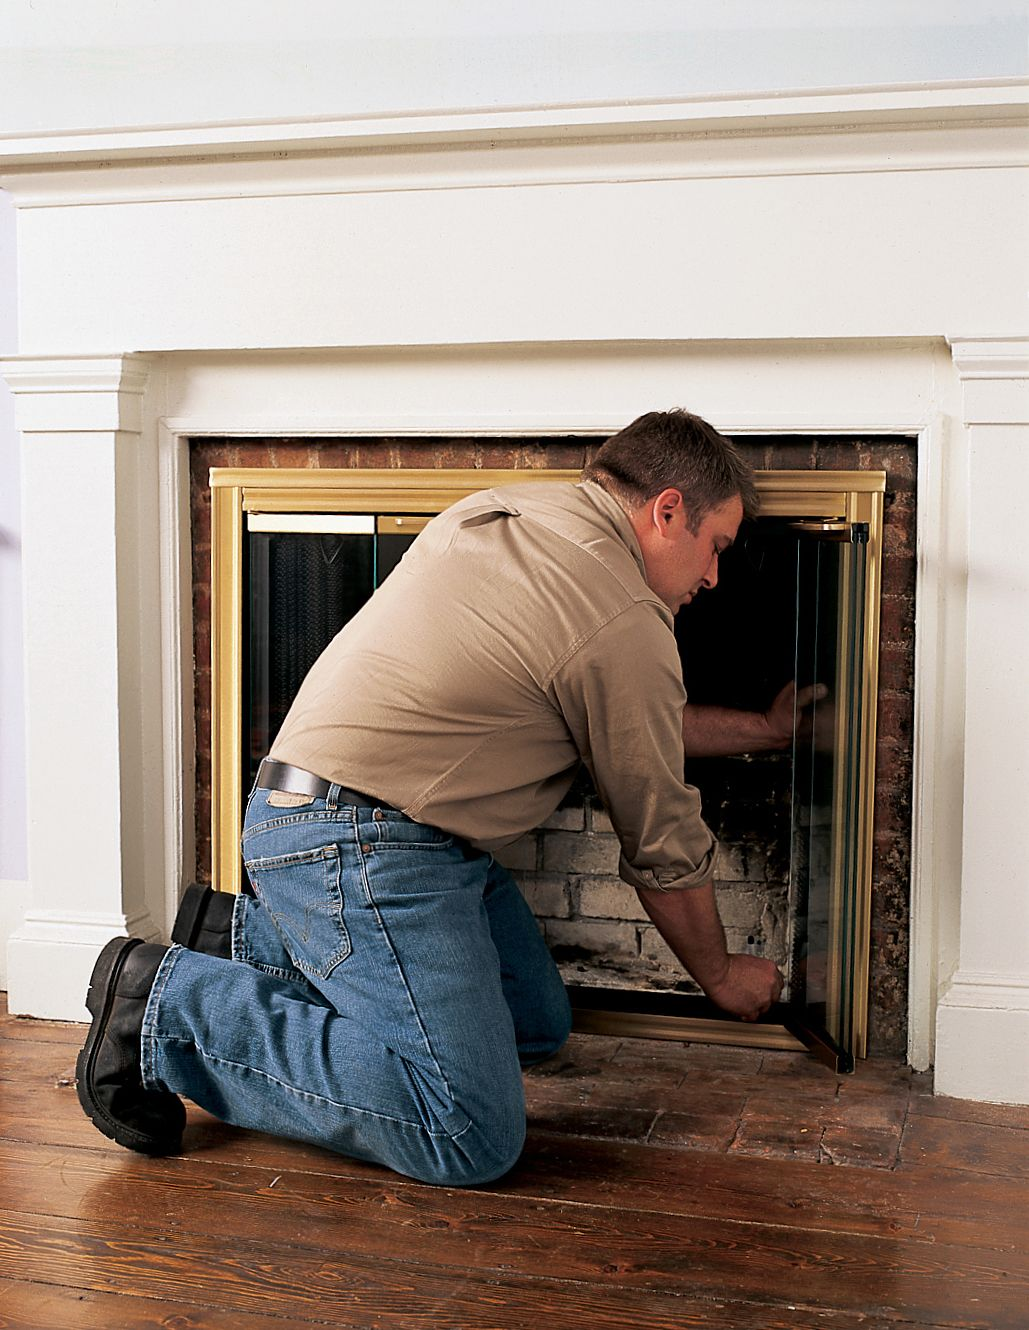 How To Install Glass Fireplace Doors Fireplace Glass Doors Glass Fireplace Fireplace Doors